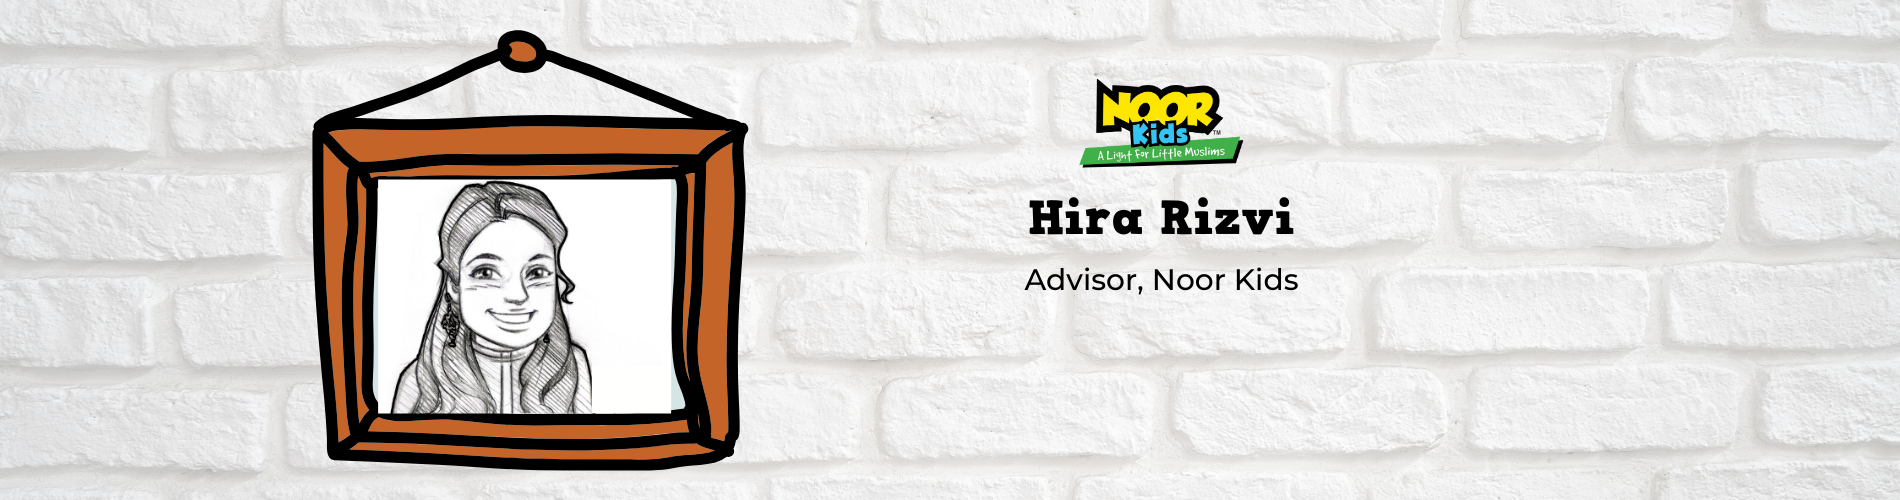 Meet Hira Rizvi, Advisor, Noor Kids